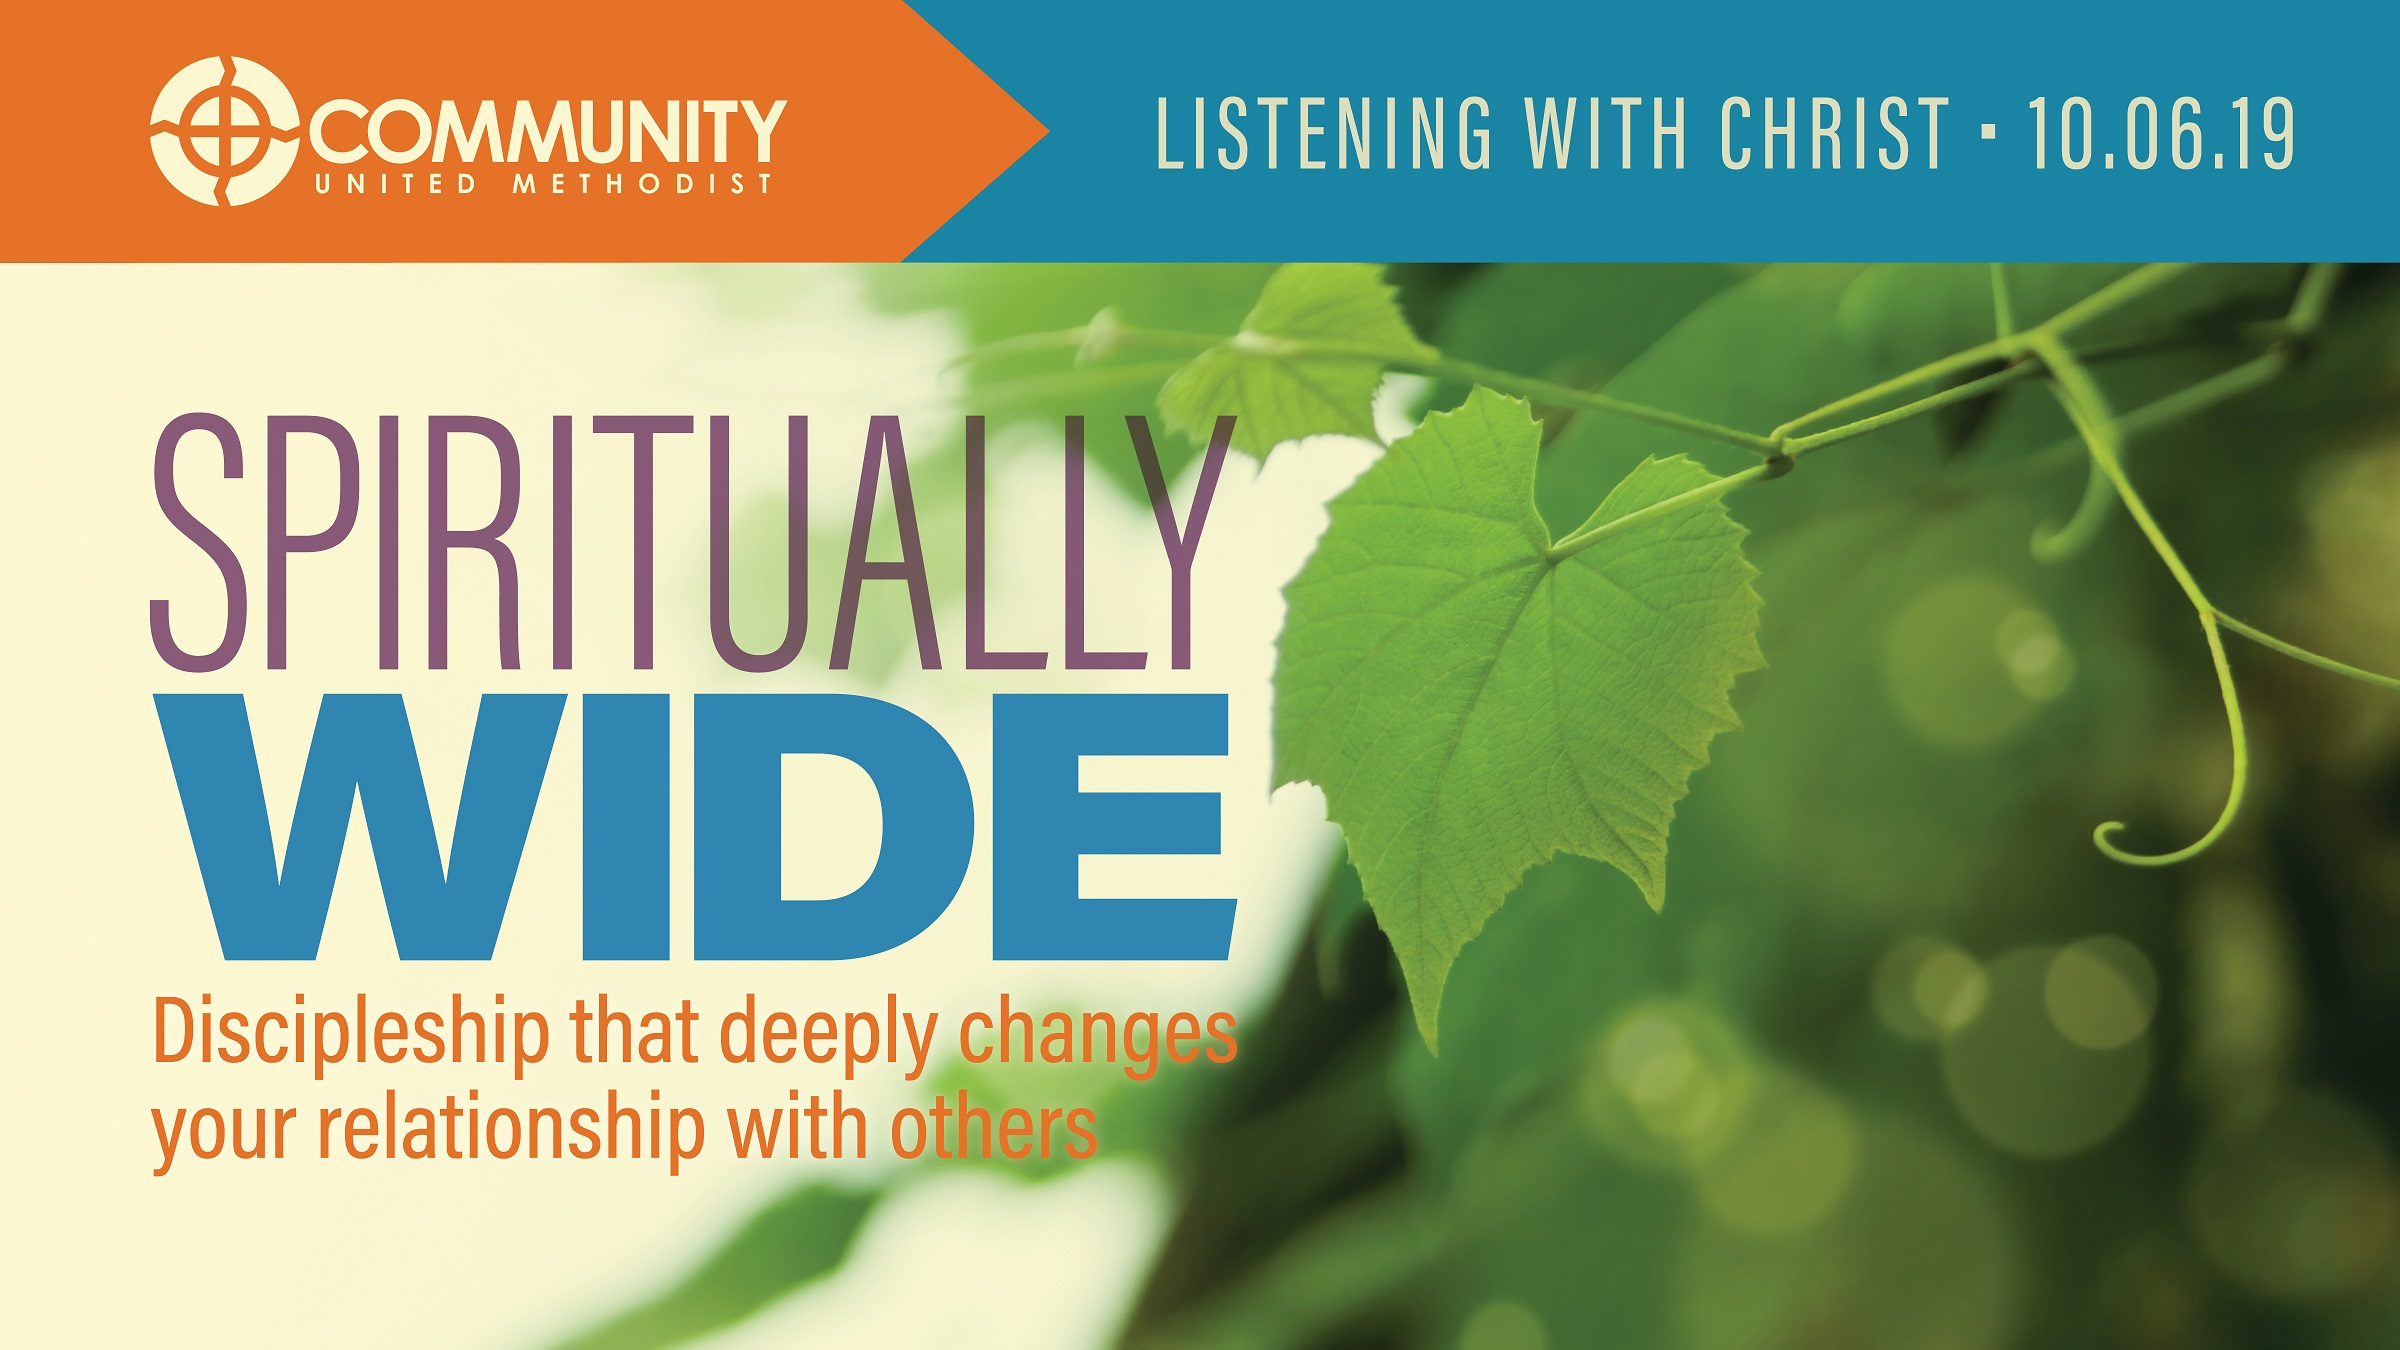 Listening with Christ